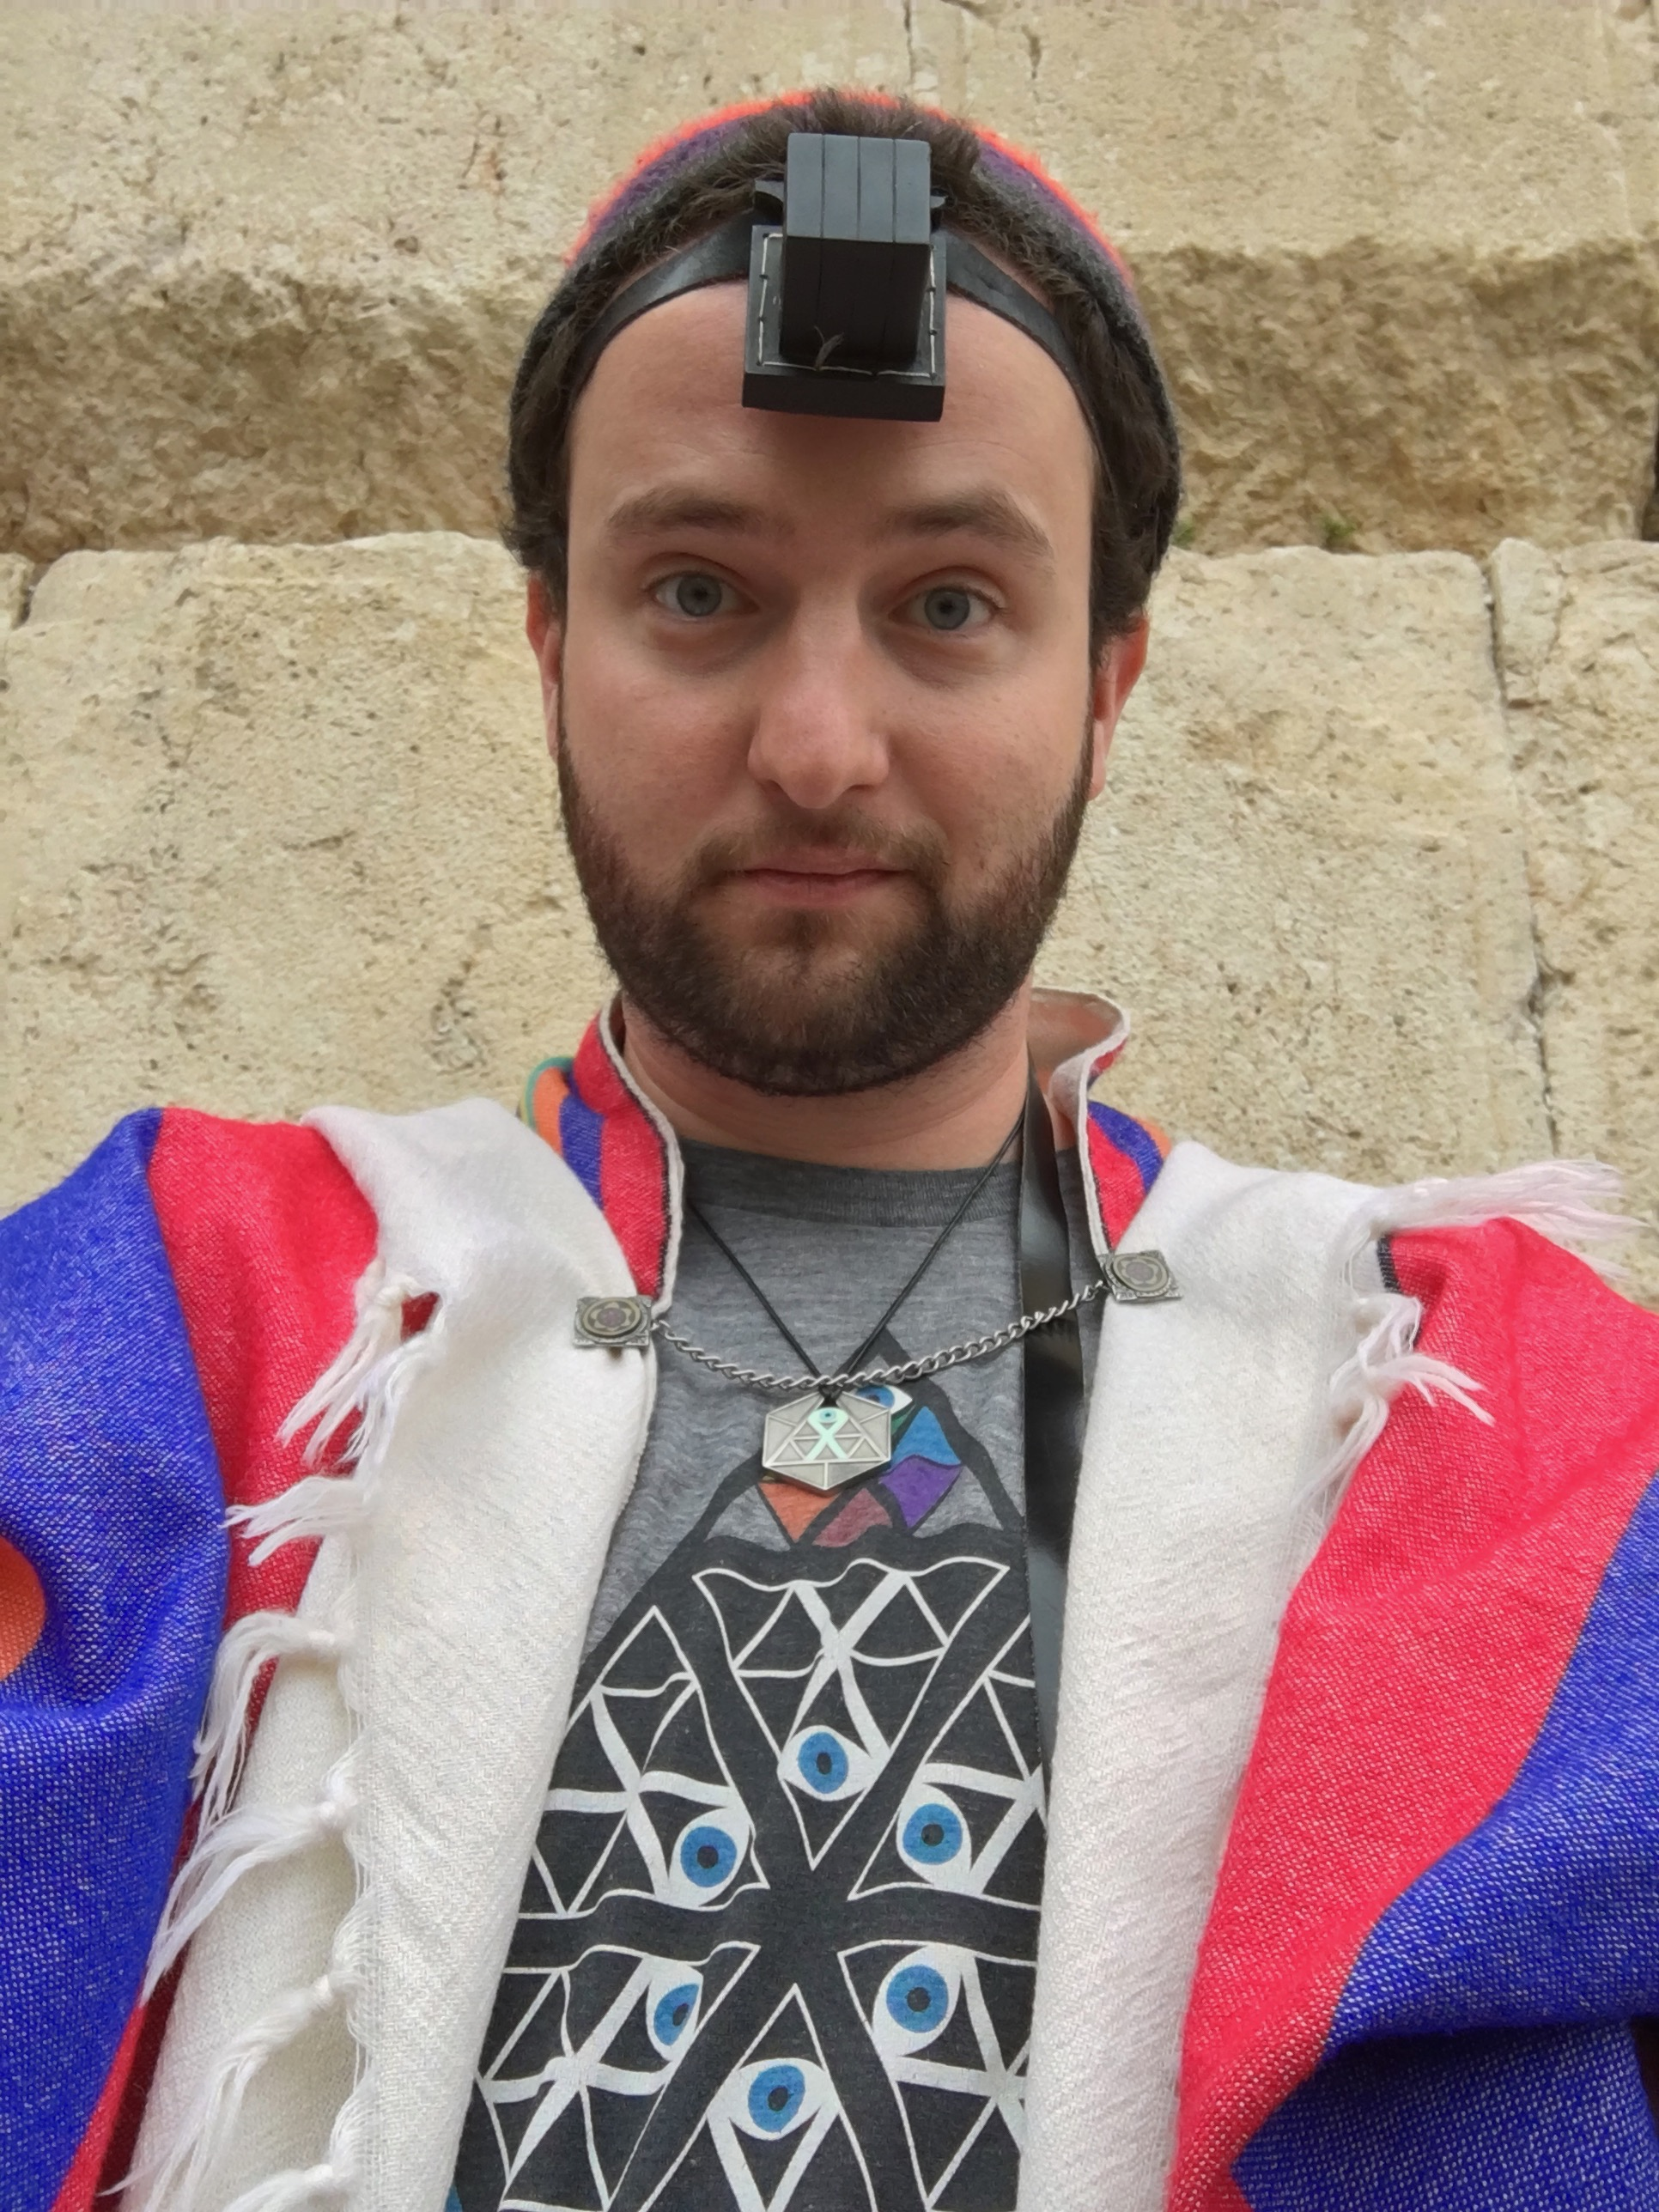 A ridiculous selfie I took at the Kotel. Note that I'm repping the  Temple of Whollyness  at, you know, the Temple of Holiness.